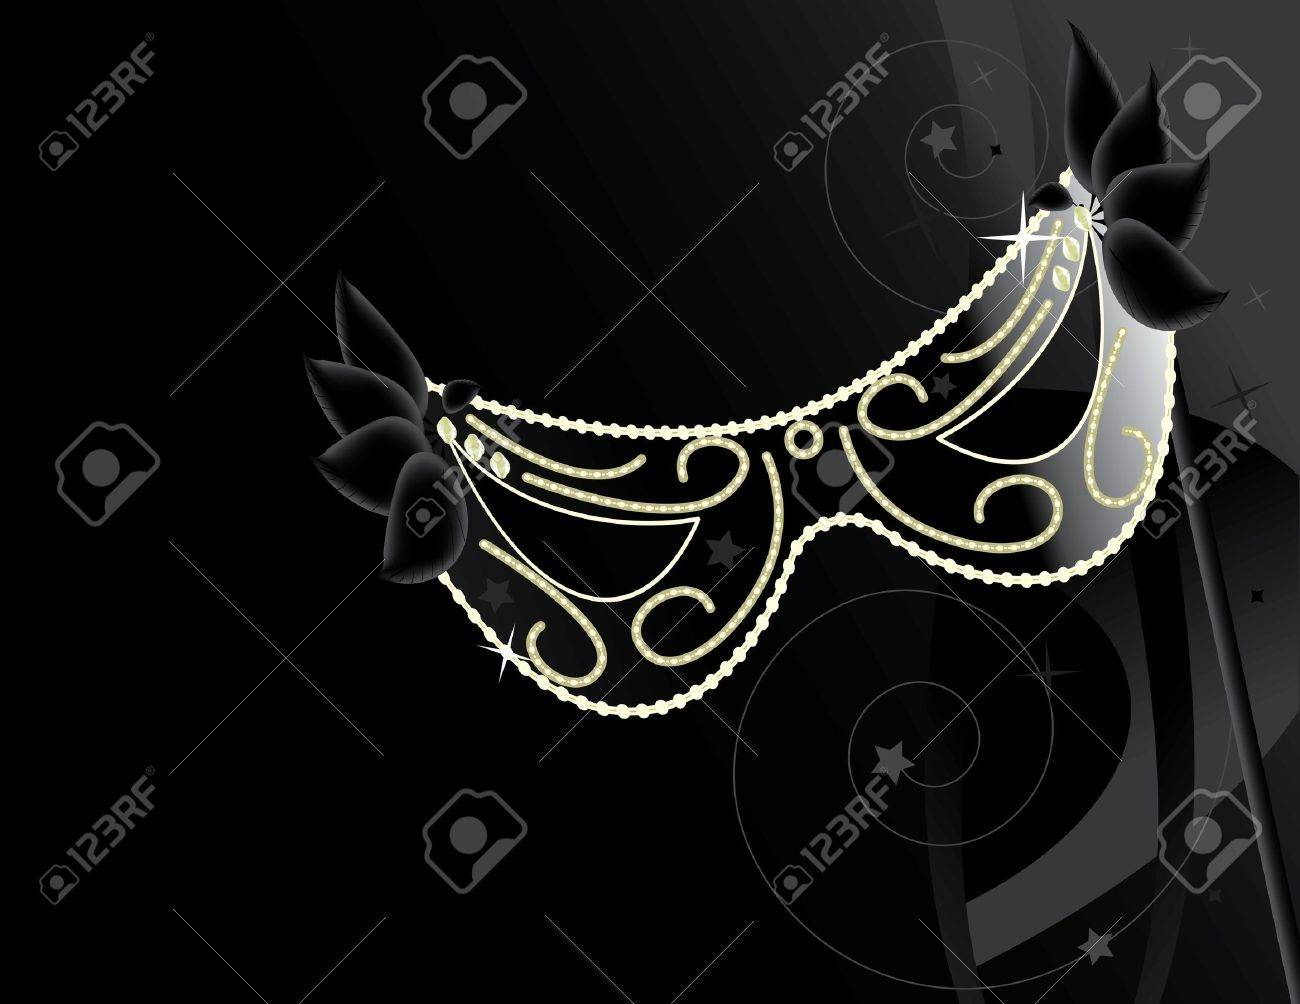 Black mask with decoration on a dark background Stock Photo - 4634163